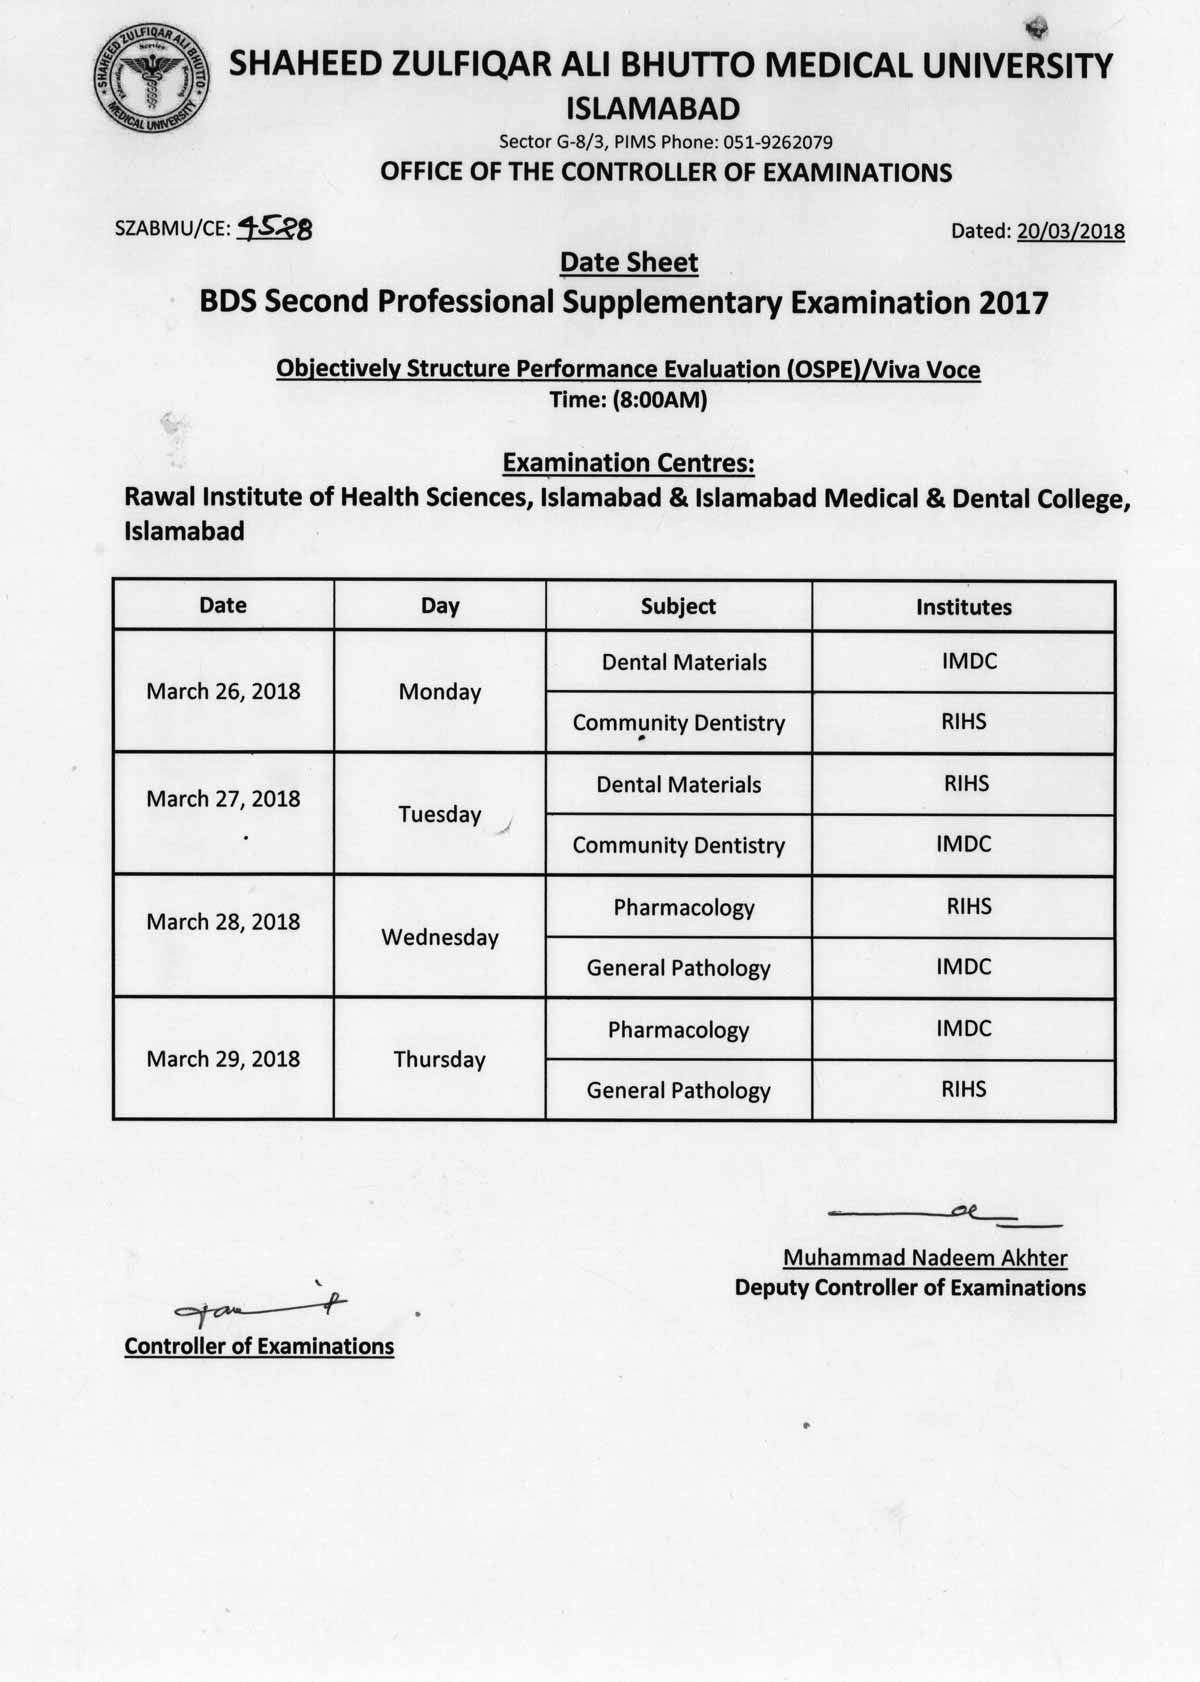 Date sheet - BDS All Professional Supplementary Examination 2017